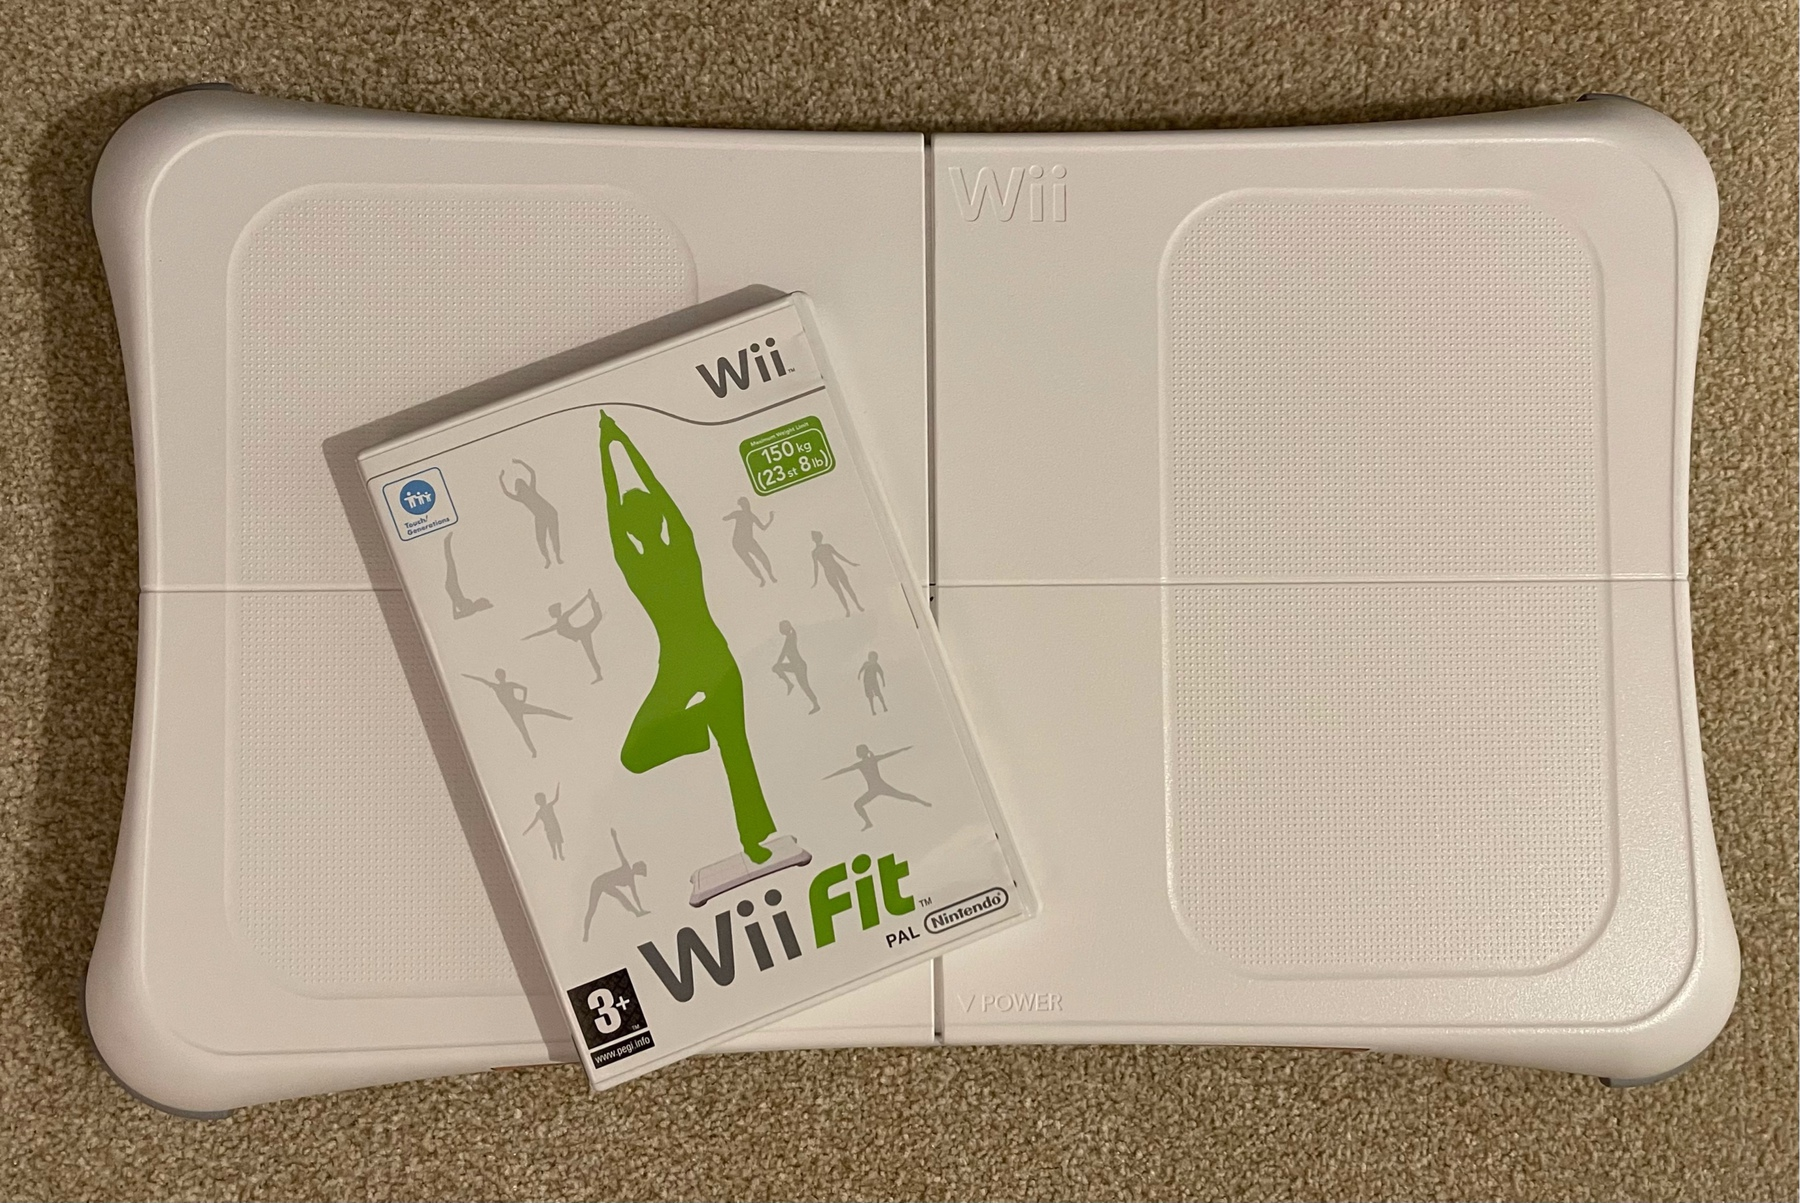 Nintendo Wii Balance Board and Wii Fit game